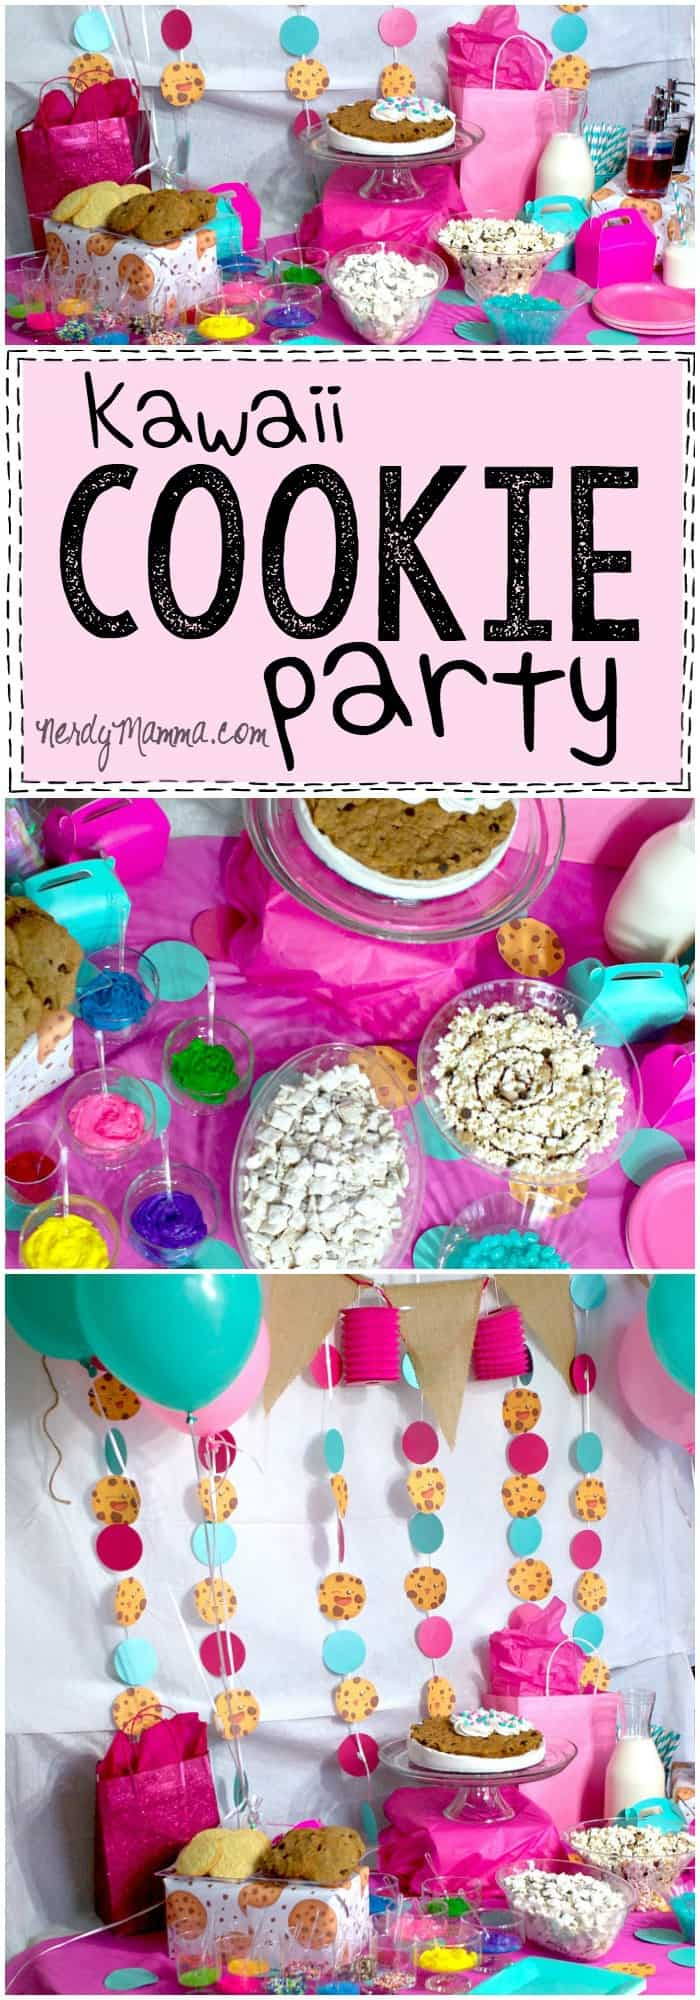 I absolutely love this awesome kawaii cookie party idea for a little girl or even a teen. So cute! And there's a recipe for coconut flavoring syrup. Random but cool!